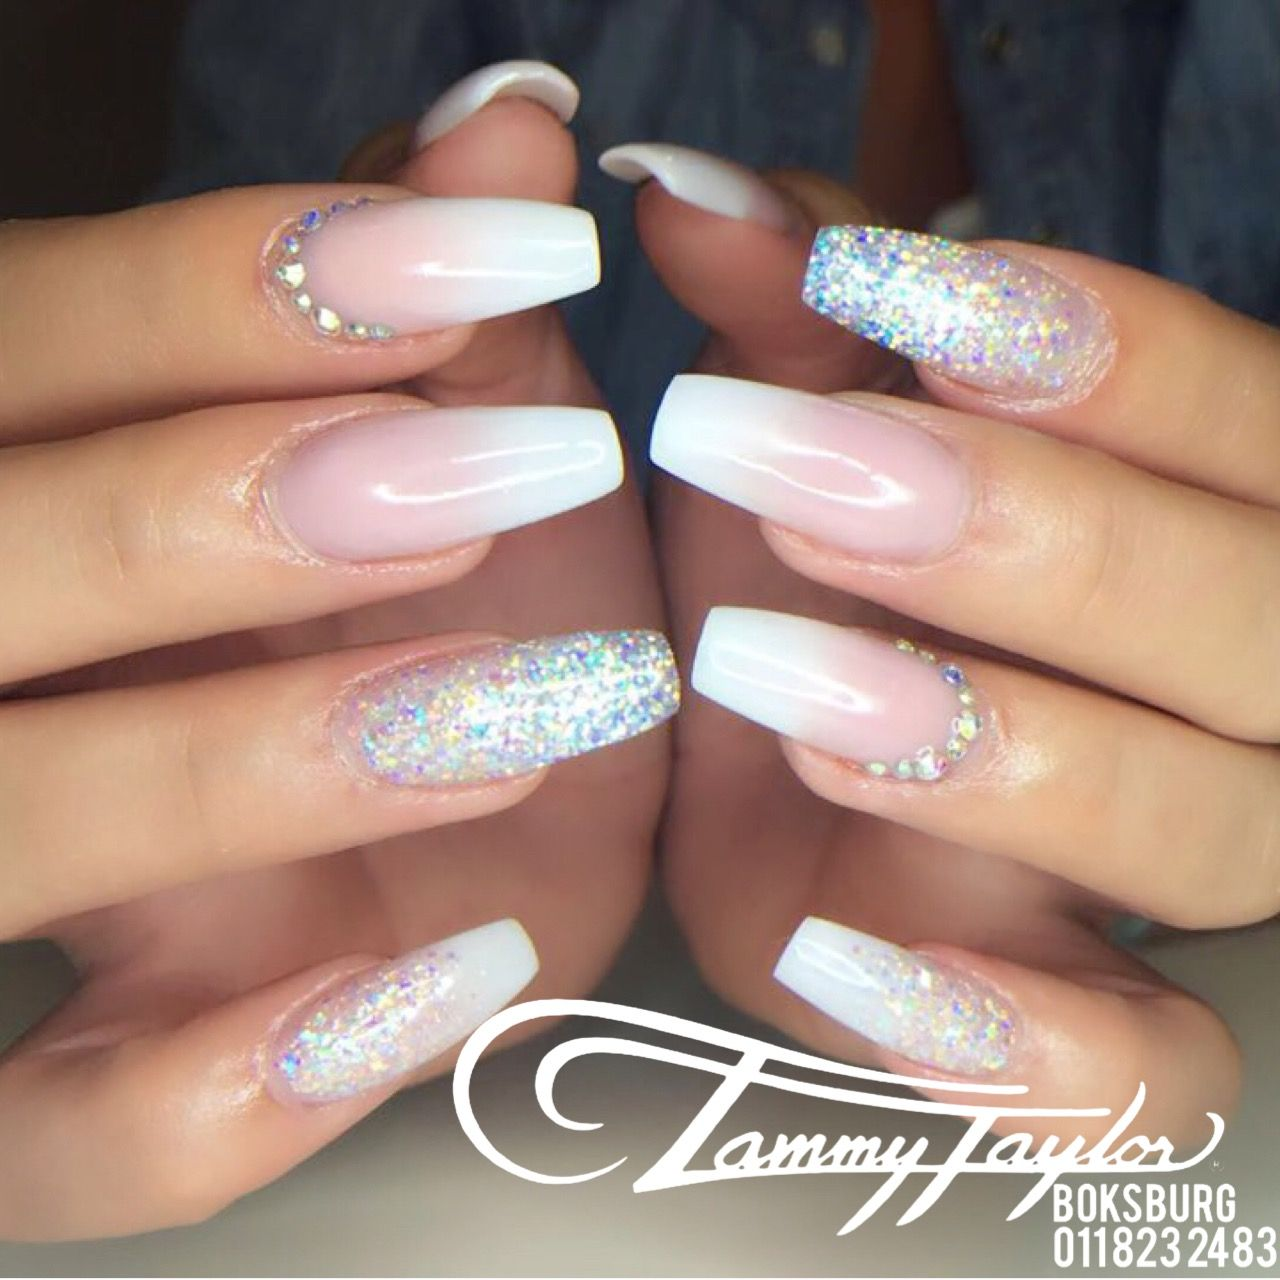 French Fade Nails + Crystals #tammytaylor | O U R N A I L S ...